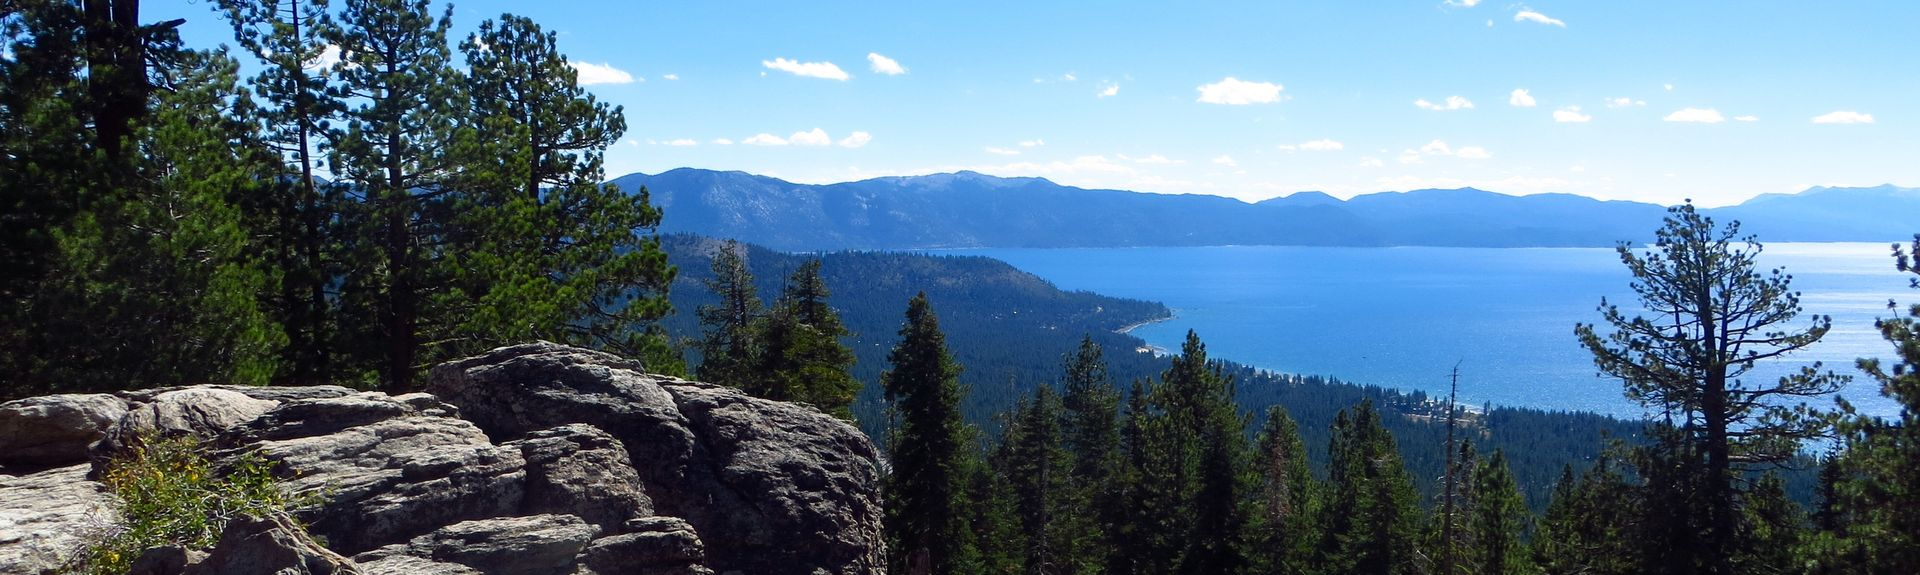 North Tahoe Marina, Tahoe Vista, California, United States of America